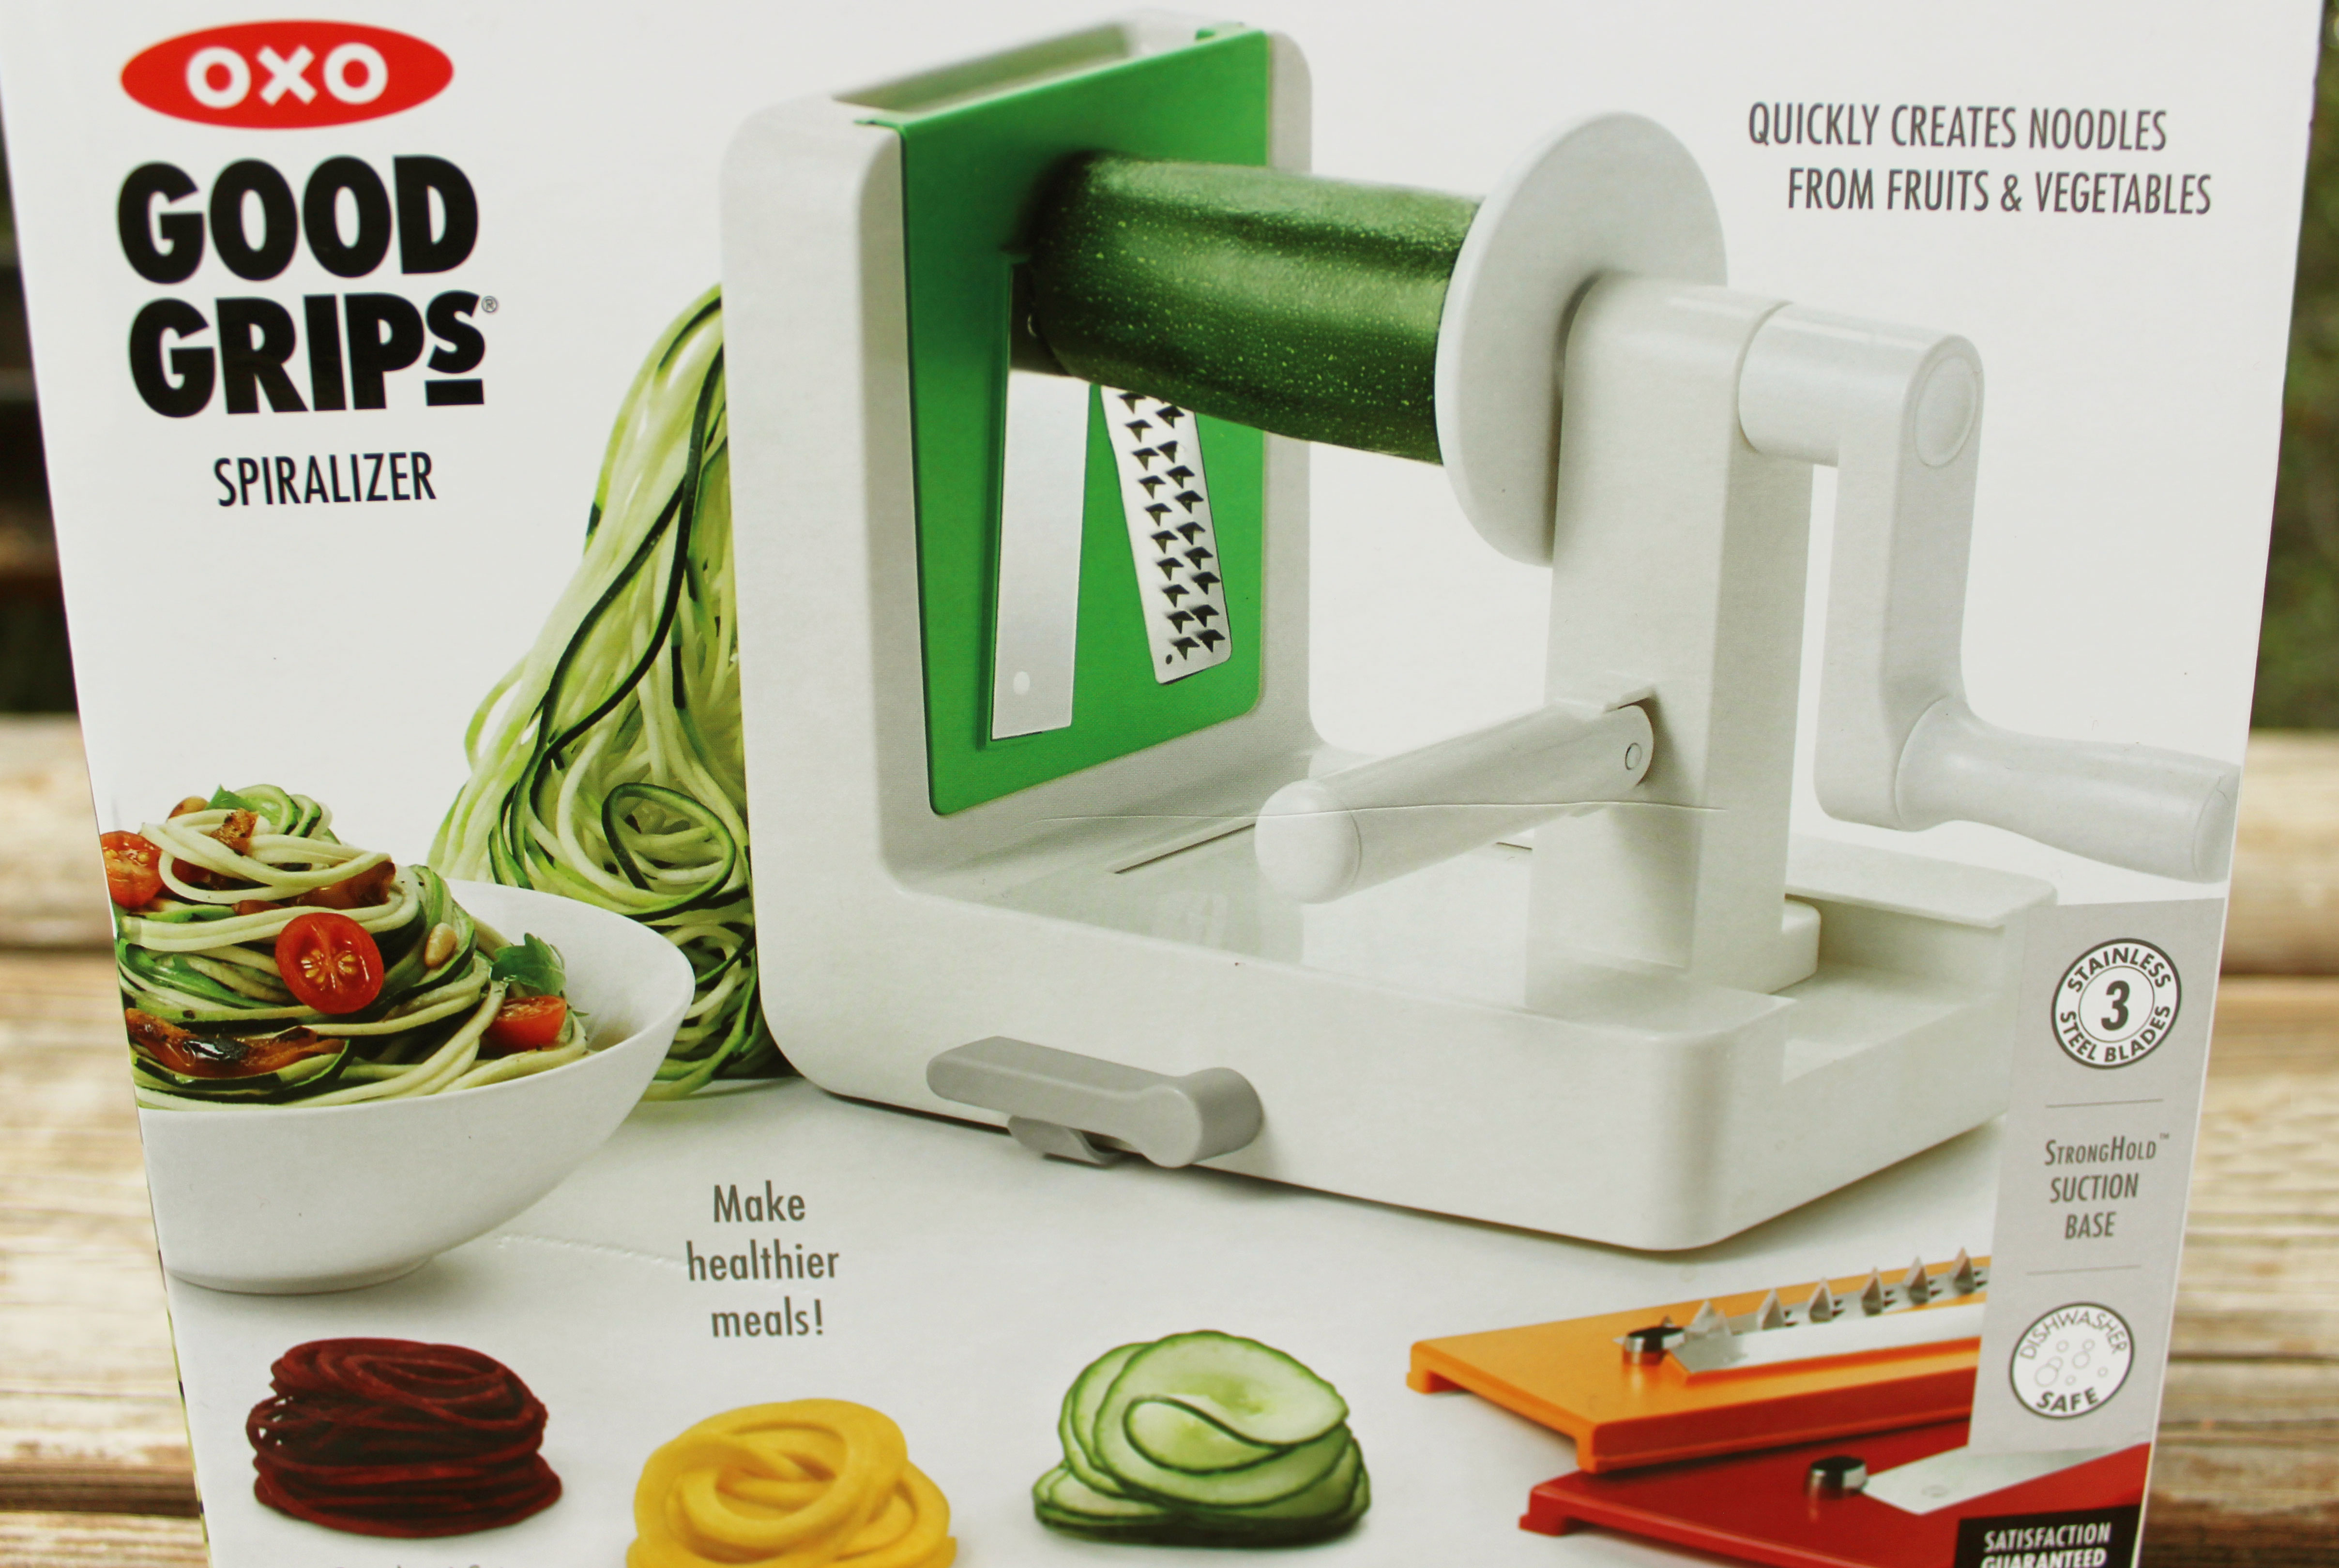 vegetable-spiralizer-oxo-good-grips-box